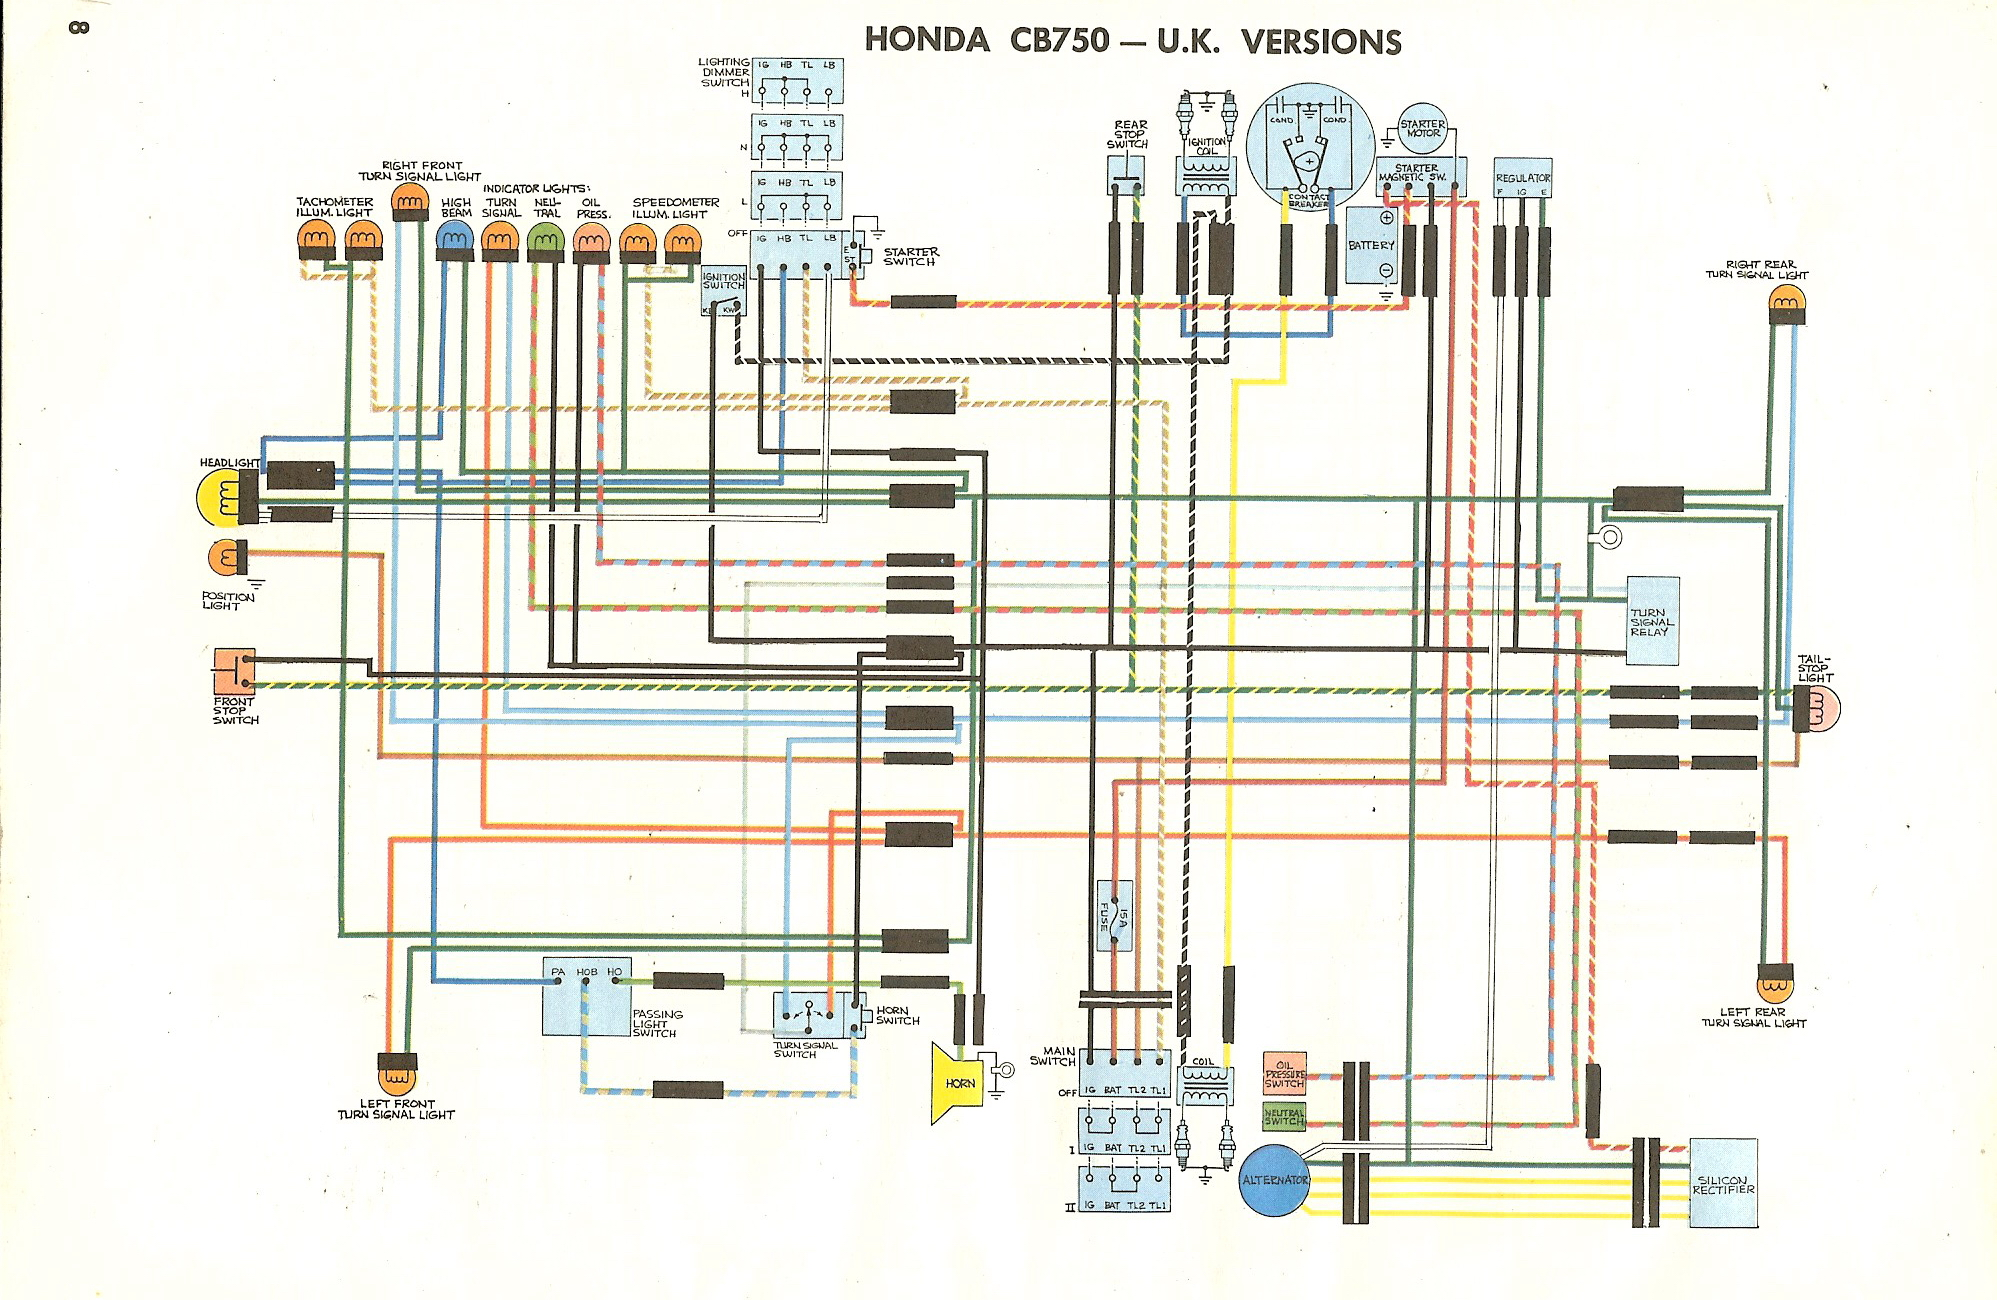 WD750UK cb750k wiring diagram motorcycle ignition wiring diagram \u2022 wiring 1978 honda cb125s wiring diagram at bayanpartner.co